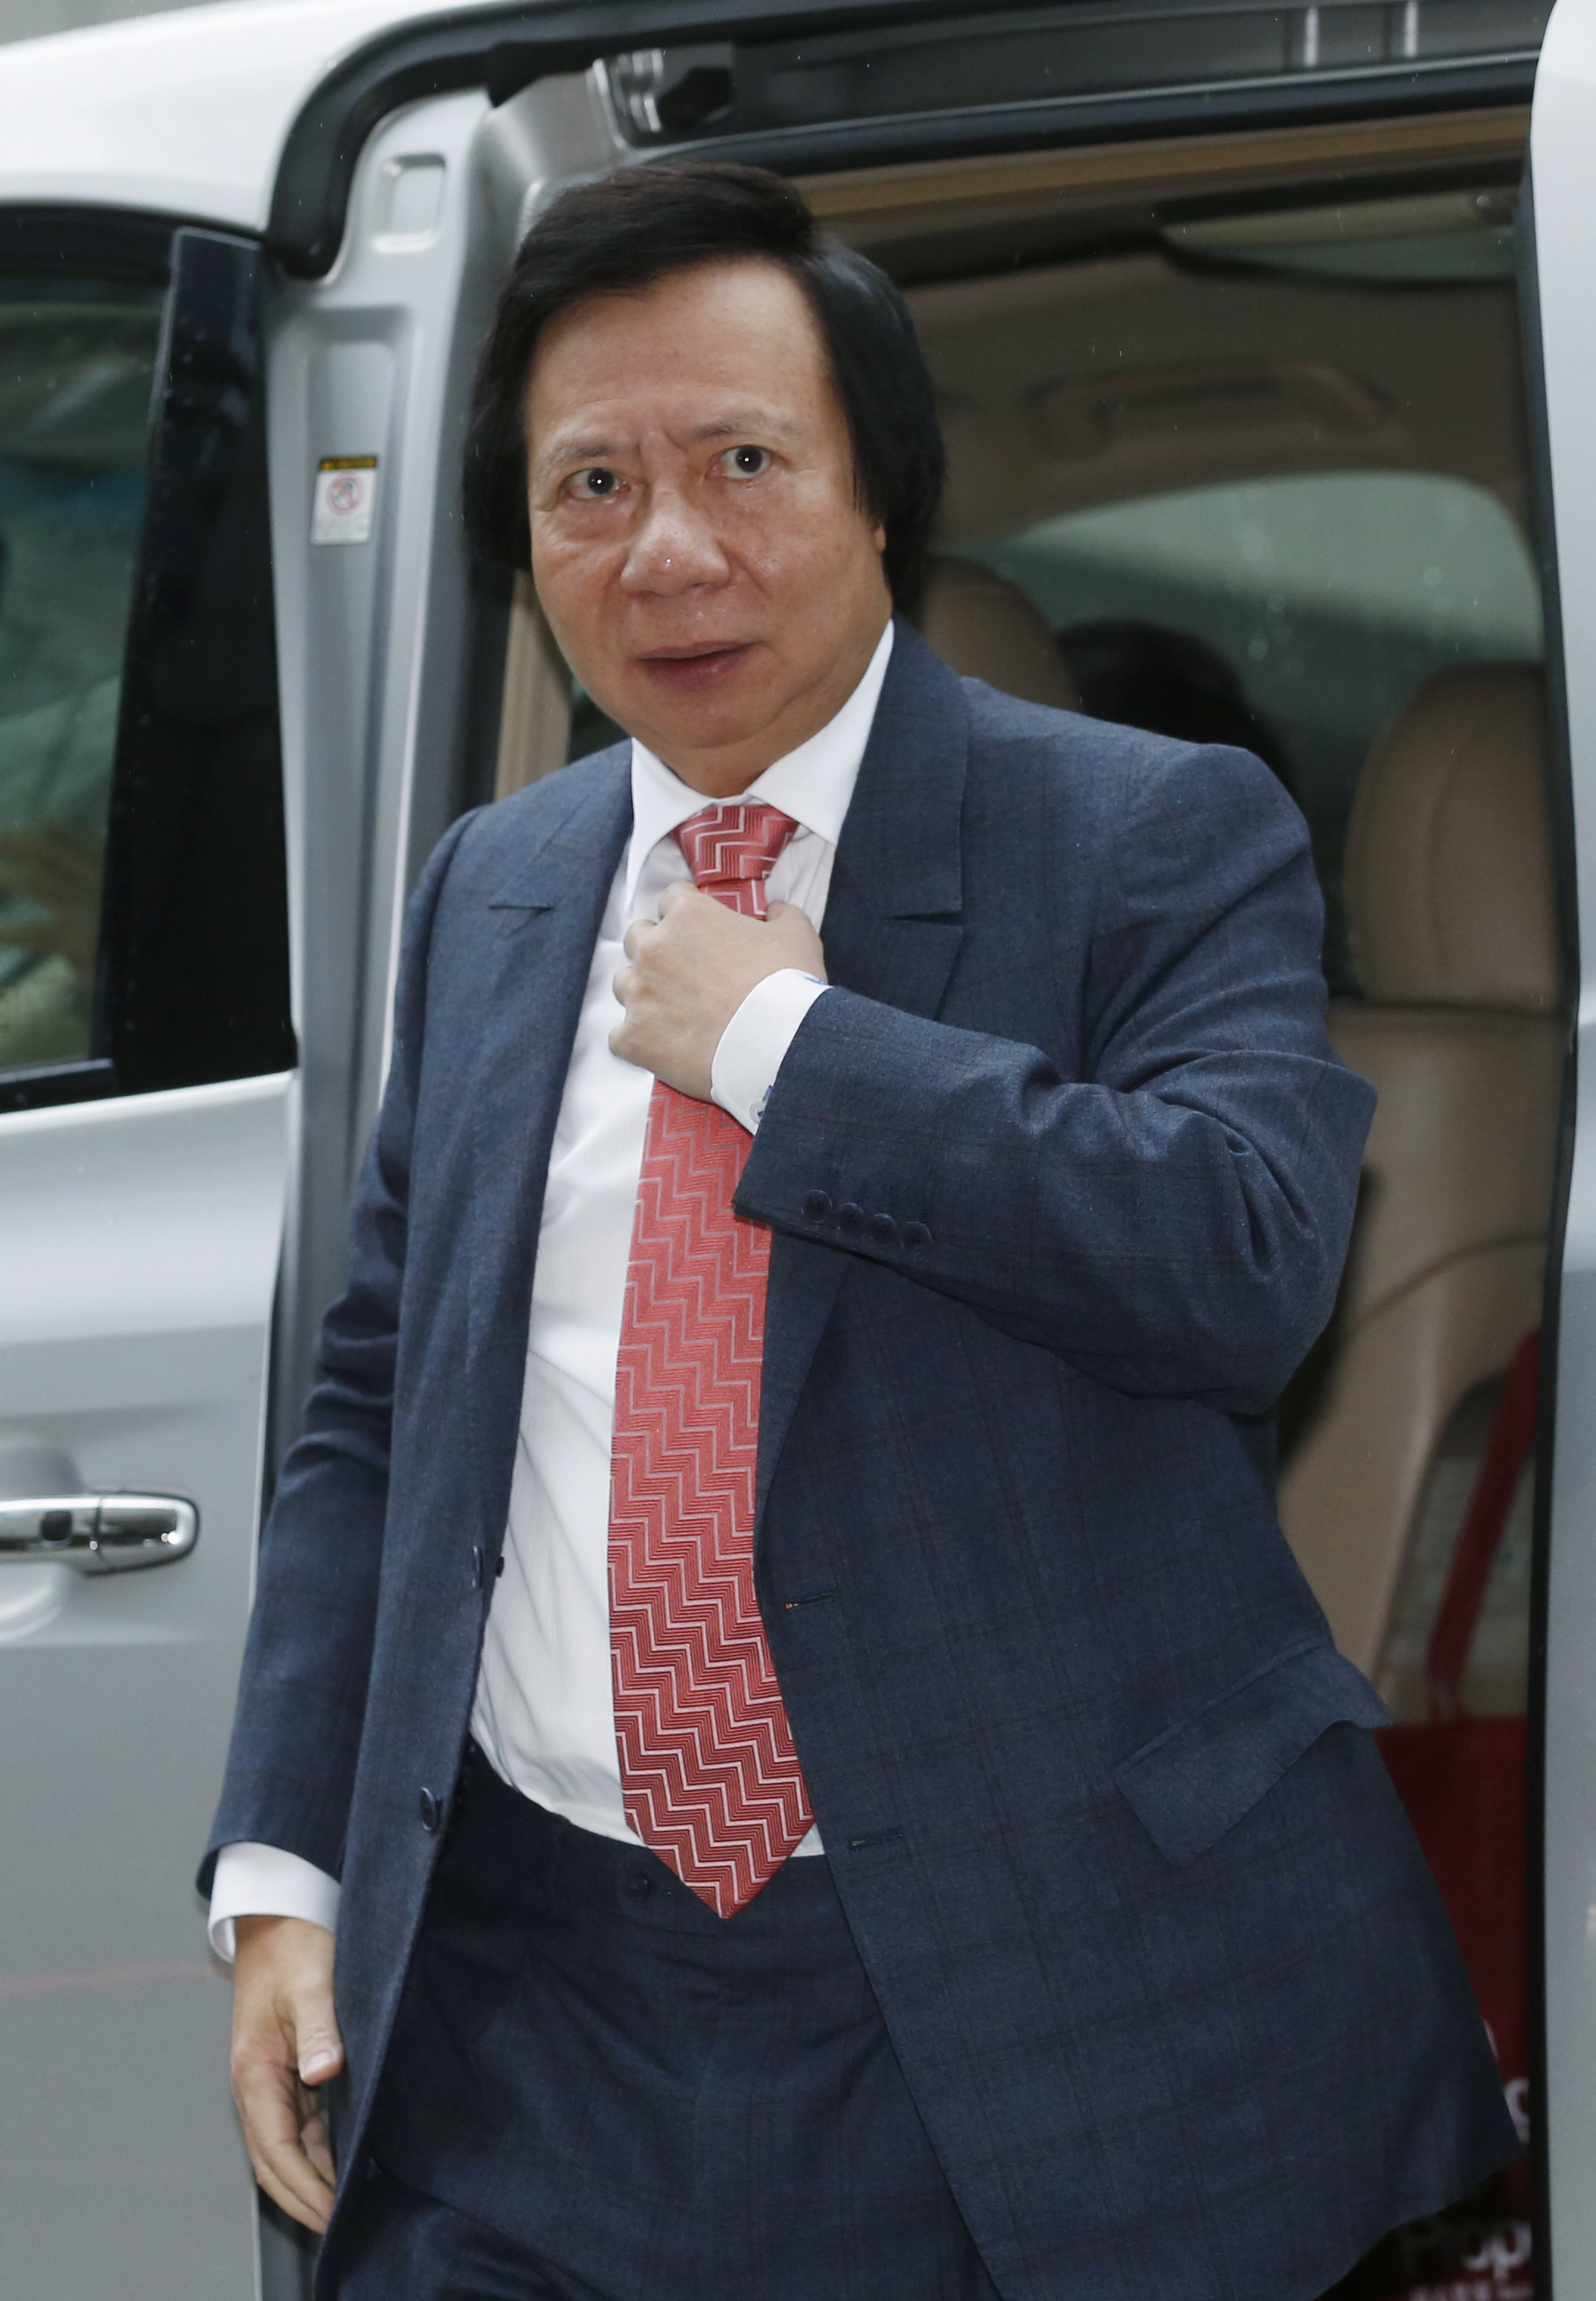 Thomas Kwok, co-chairman of Hong Kong developer Sun Hung Kai Properties, arrives at the High Court in Hong Kong on Dec. 19, 2014